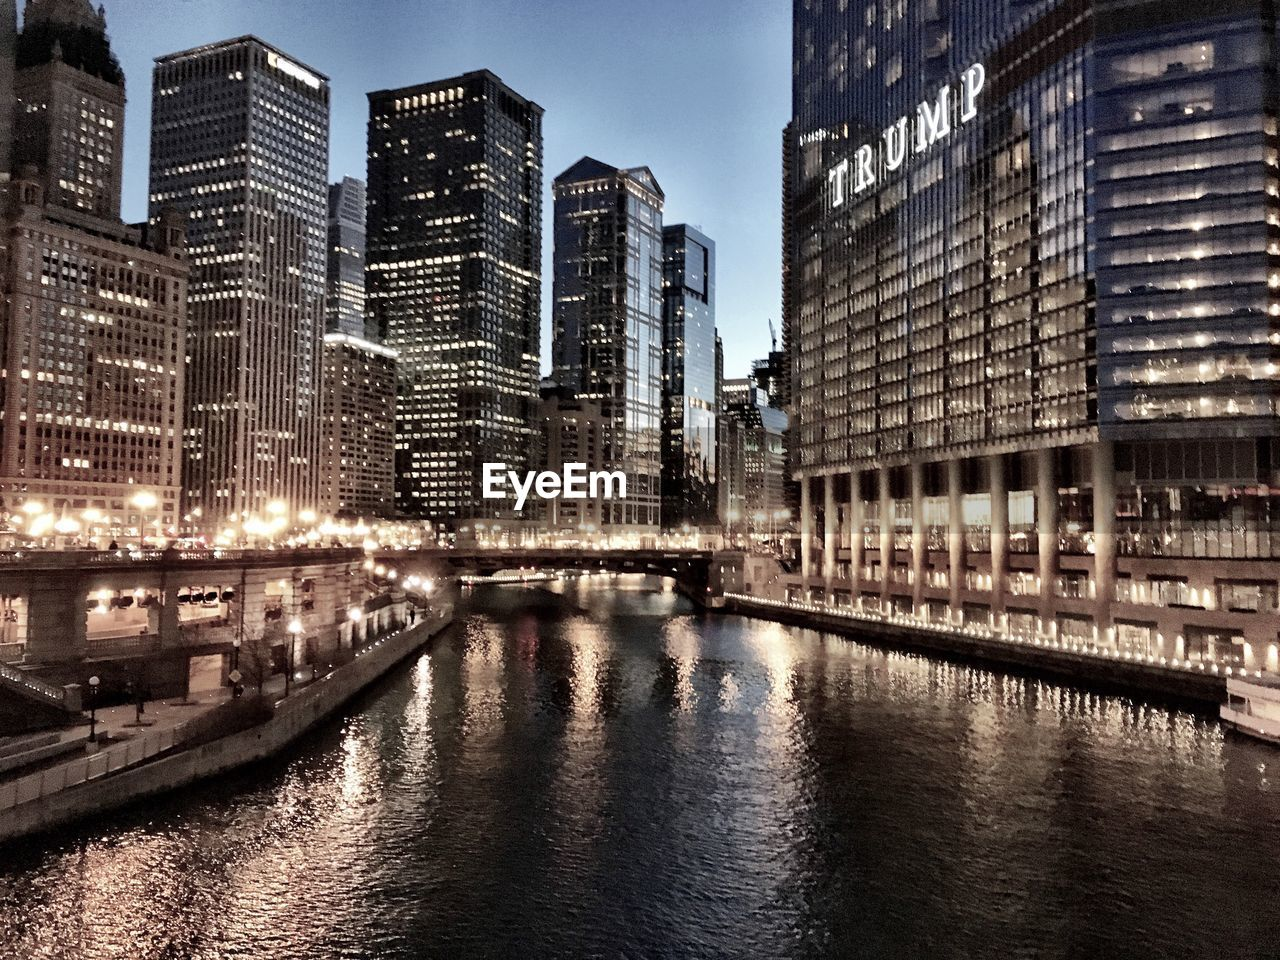 architecture, building exterior, built structure, city, skyscraper, travel destinations, waterfront, transportation, modern, illuminated, city life, outdoors, sky, no people, water, cityscape, urban skyline, day, nautical vessel